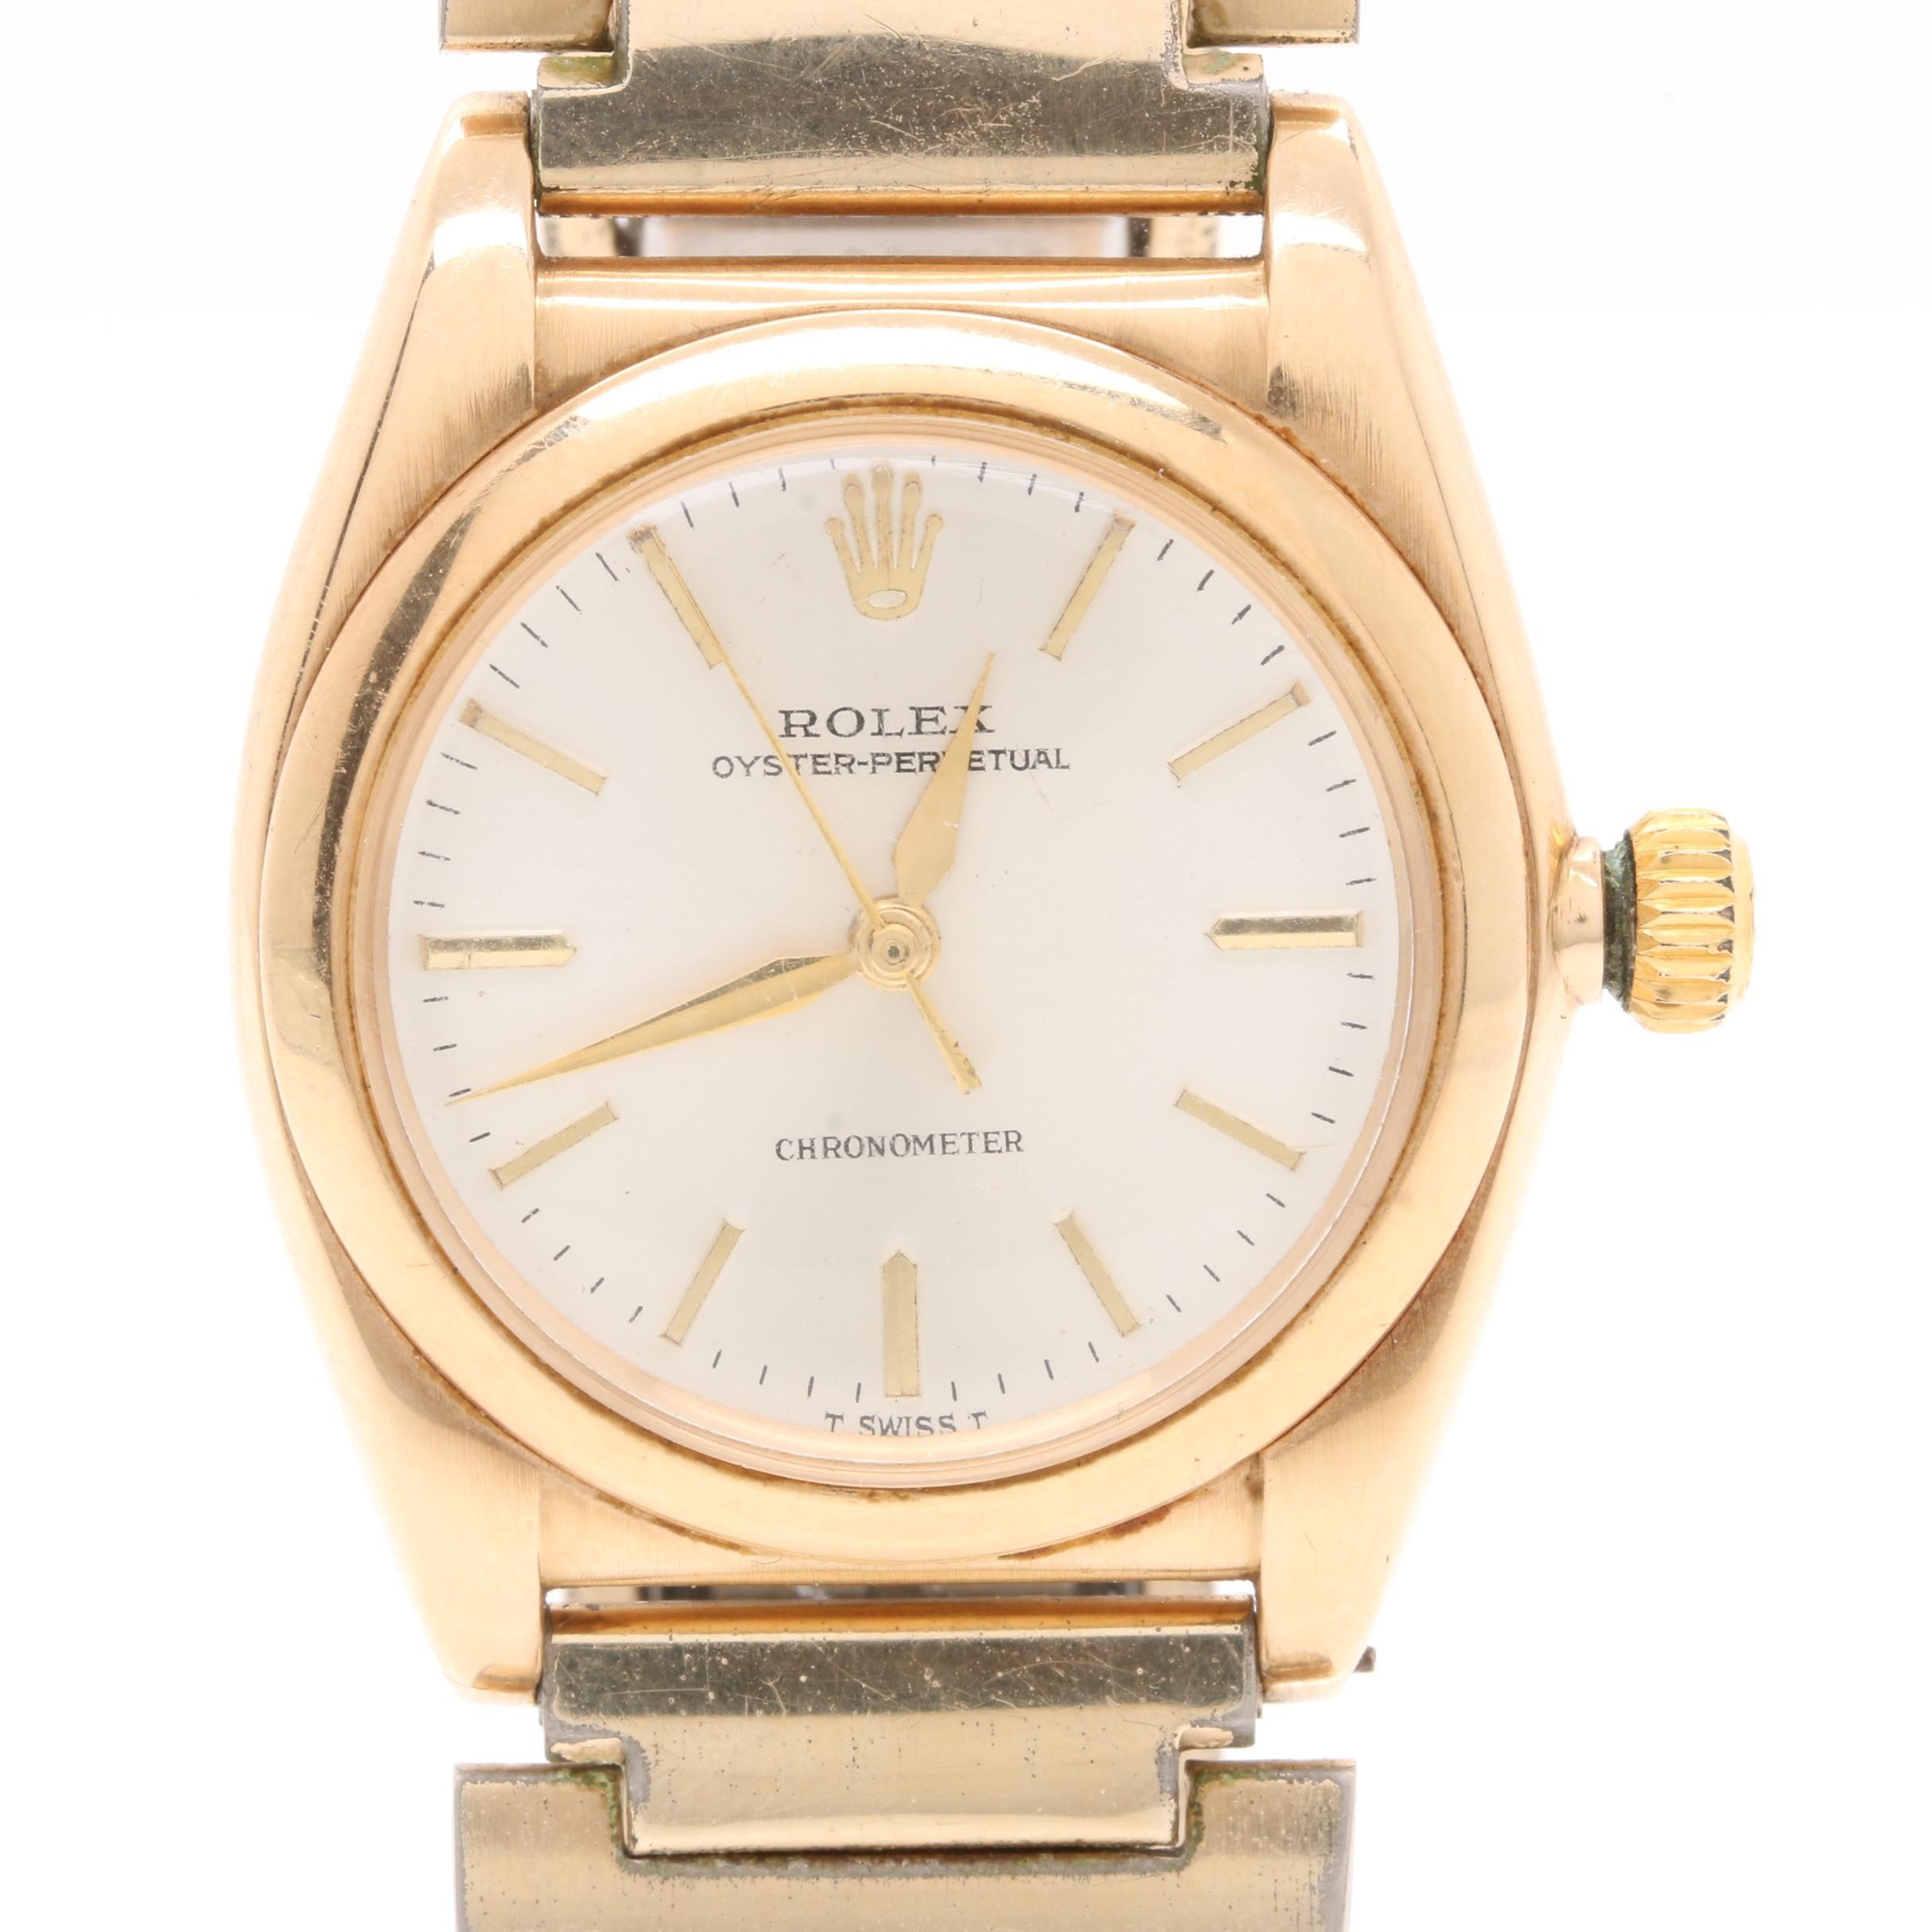 Rolex Oyster Chronometer 14K Yellow Gold Wristwatch with Speidel Bracelet